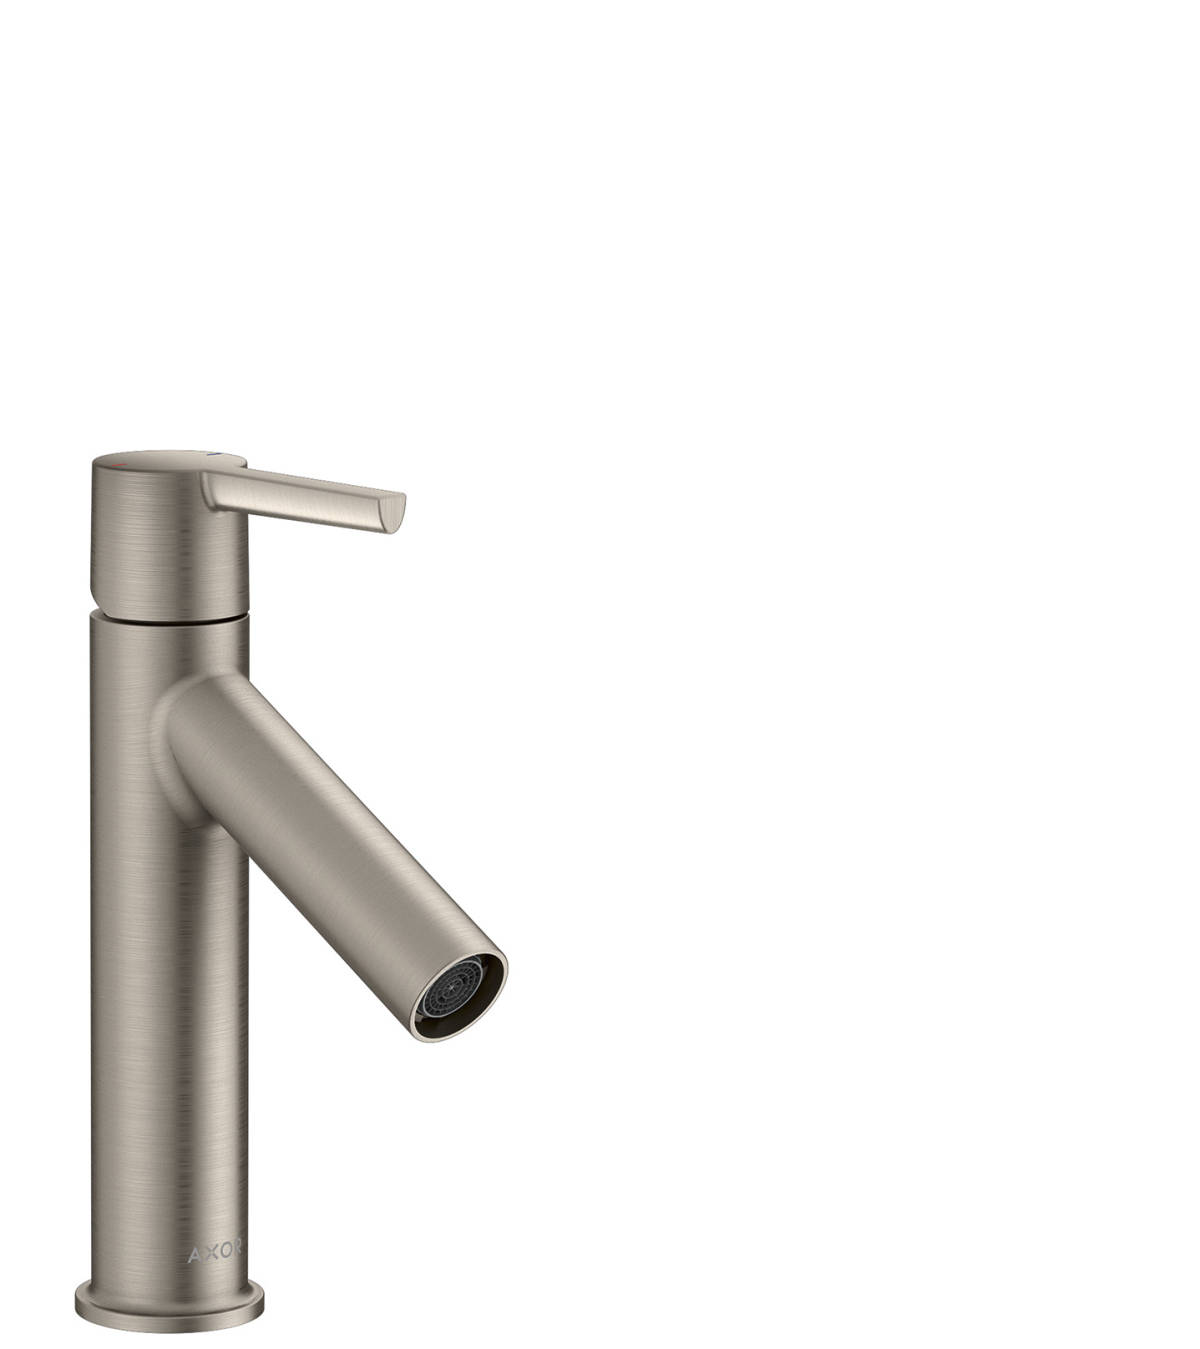 Single lever basin mixer 100 with lever handle and waste set, Stainless Steel Optic, 10003800